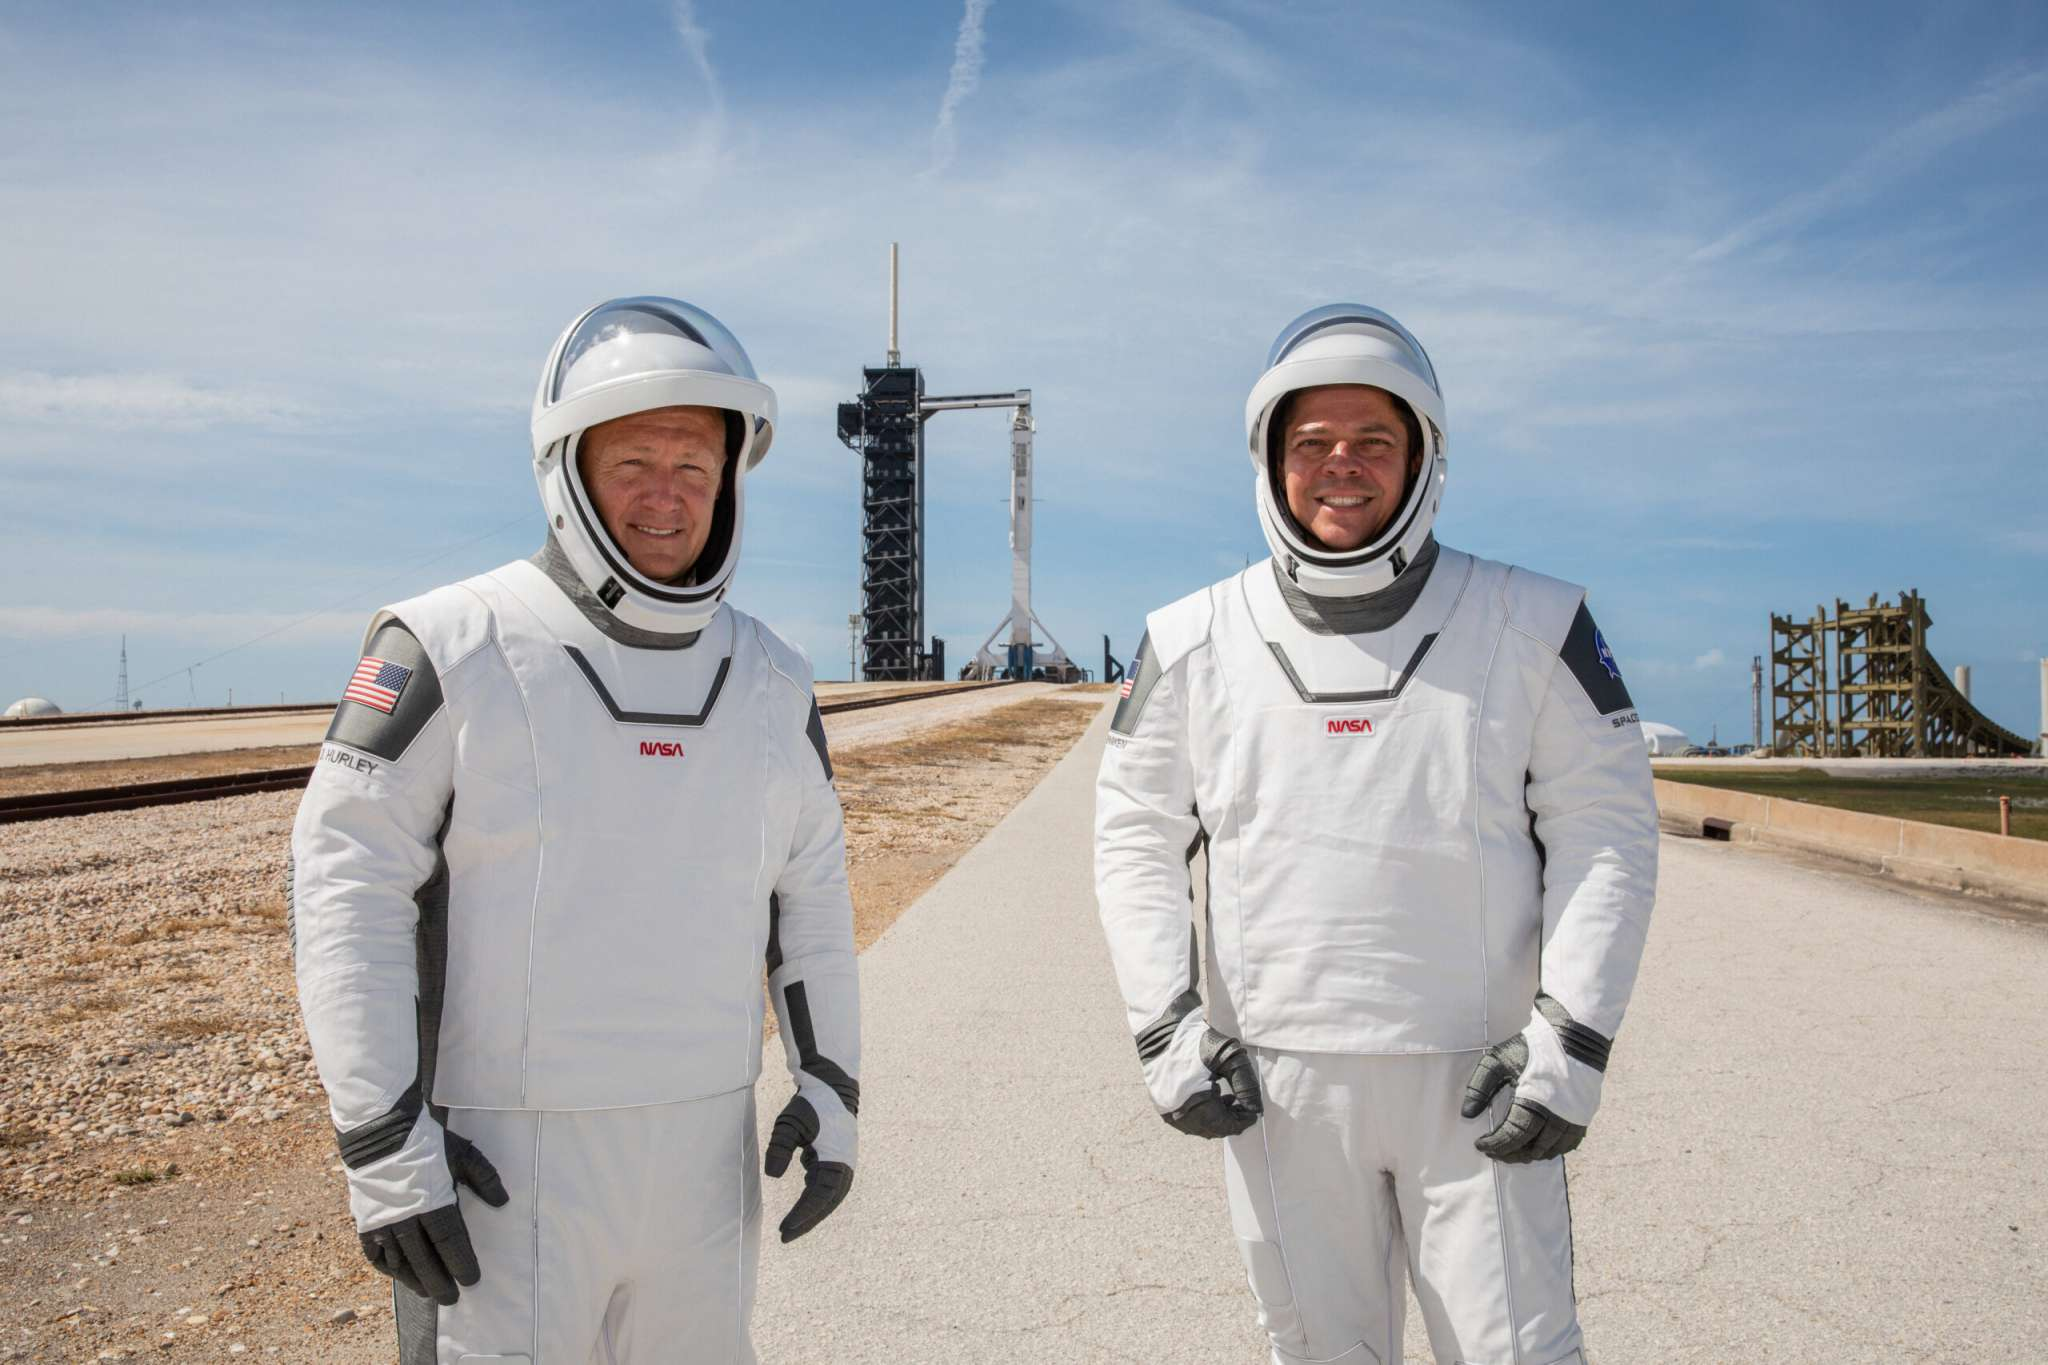 Info Shymkent - Astronauts for 1st Crew Dragon flight: Behnken and Hurley (Image: NASA)